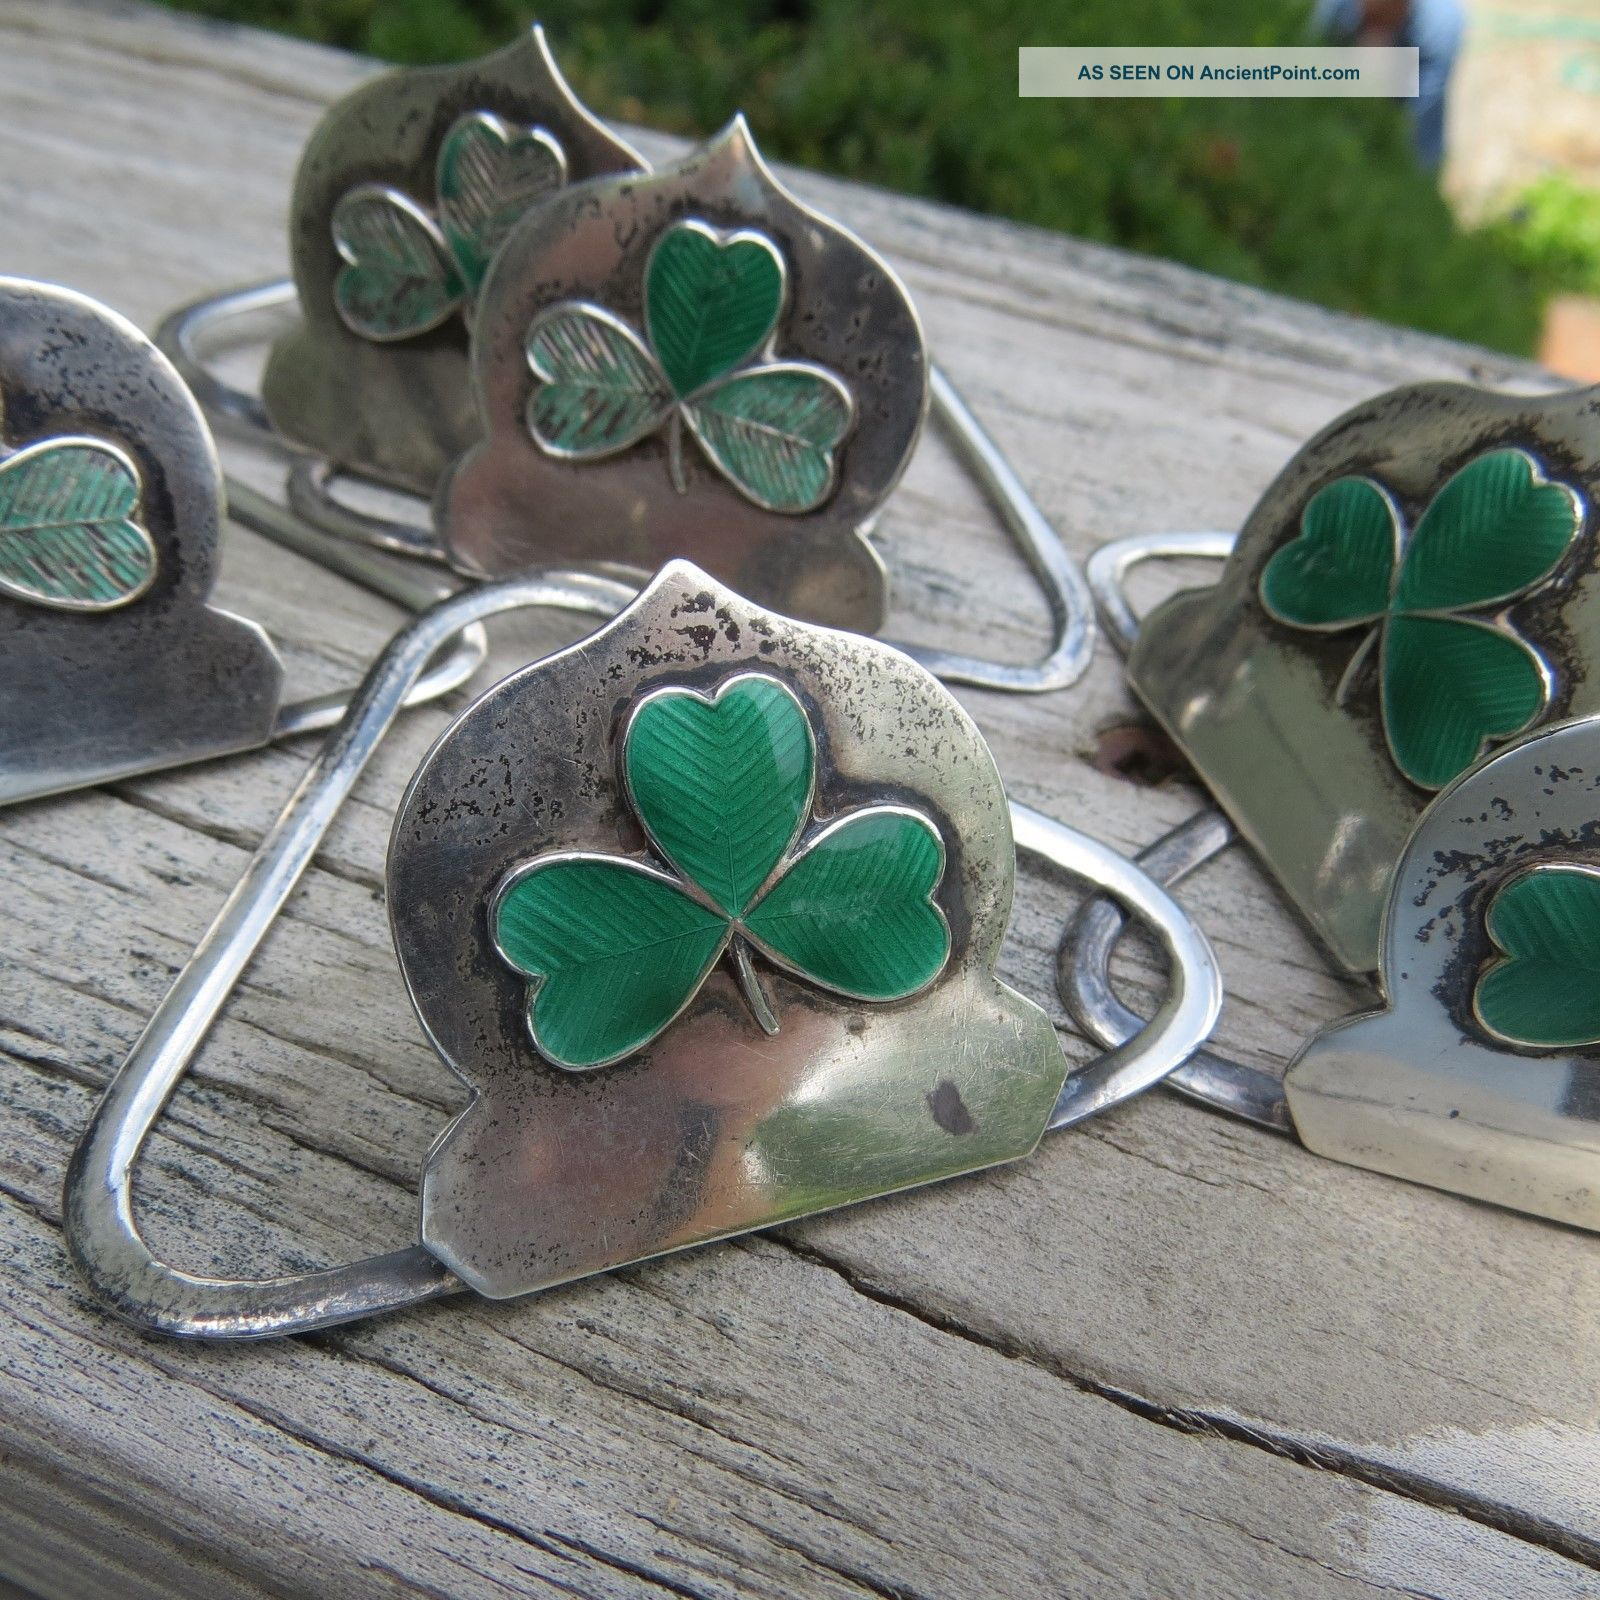 6 Sterling Silver Antique Napkin Ring Place Card Enamel Clover Birmingham Englnd Napkin Rings & Clips photo